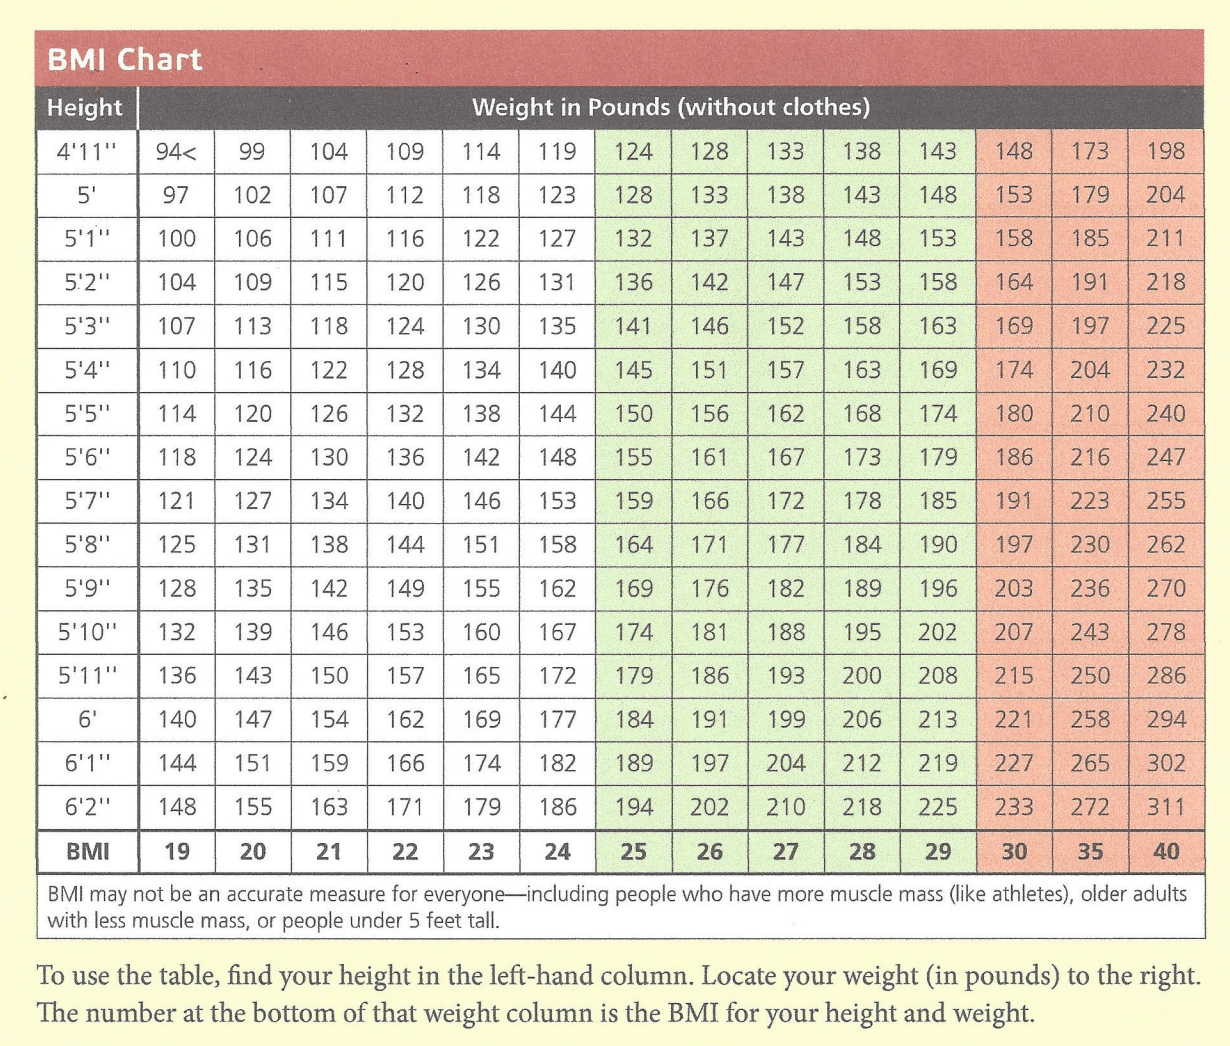 Research begins to question use of bmi body mass index whats the best measurement of health the bmi chart nvjuhfo Gallery